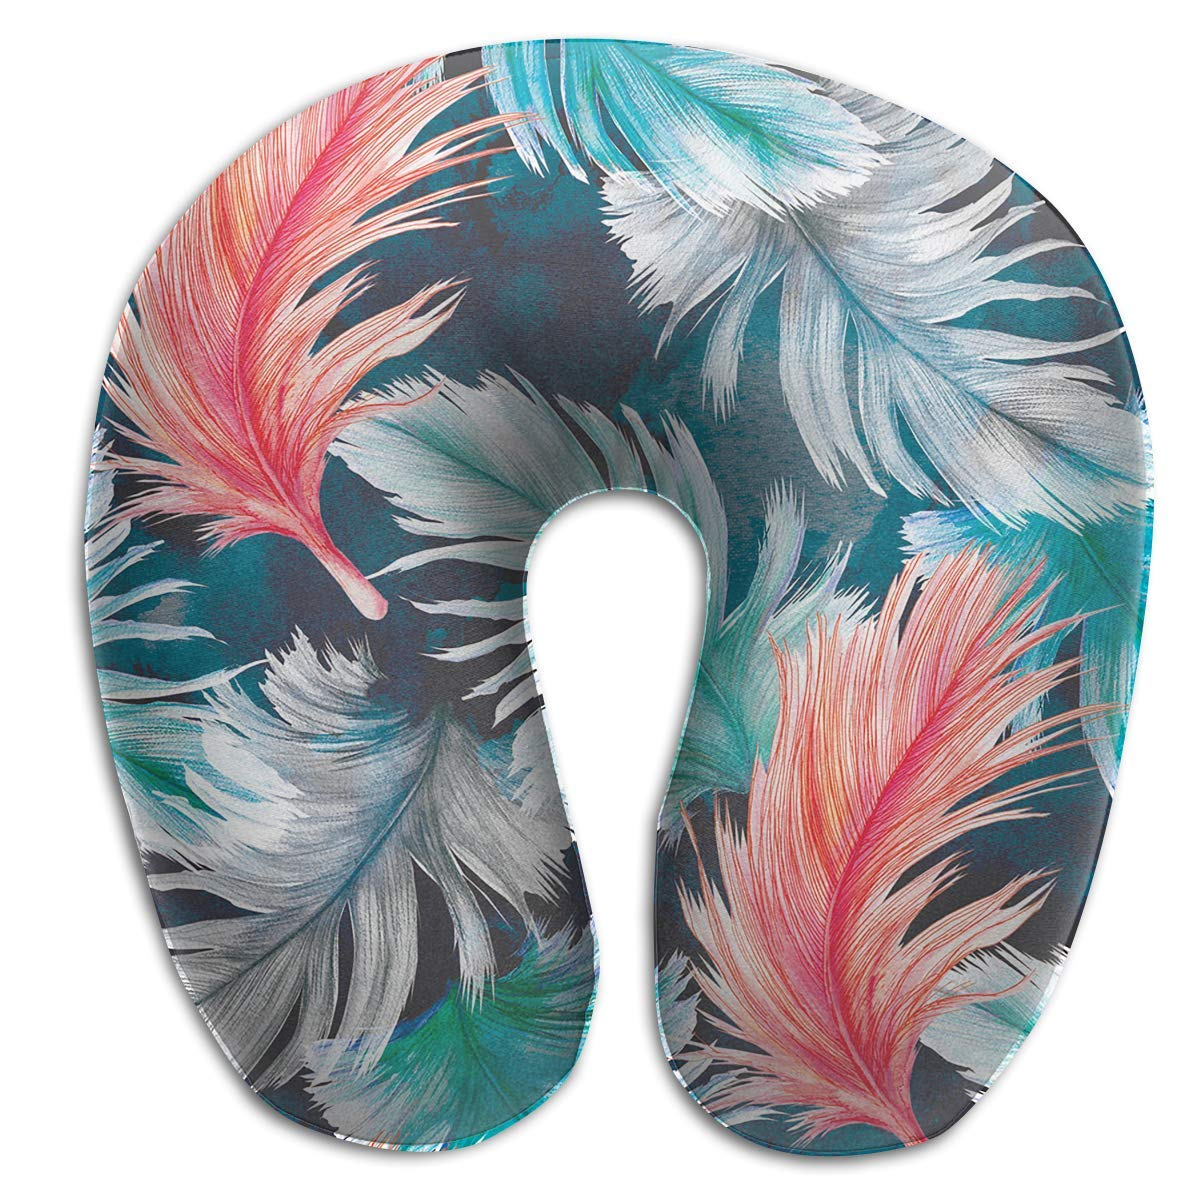 Vidmkeo Neck Pillow Feathers Pattern Travel U-Shaped Pillow Soft Memory Neck Support for Train Airplane Sleeping Unisex11